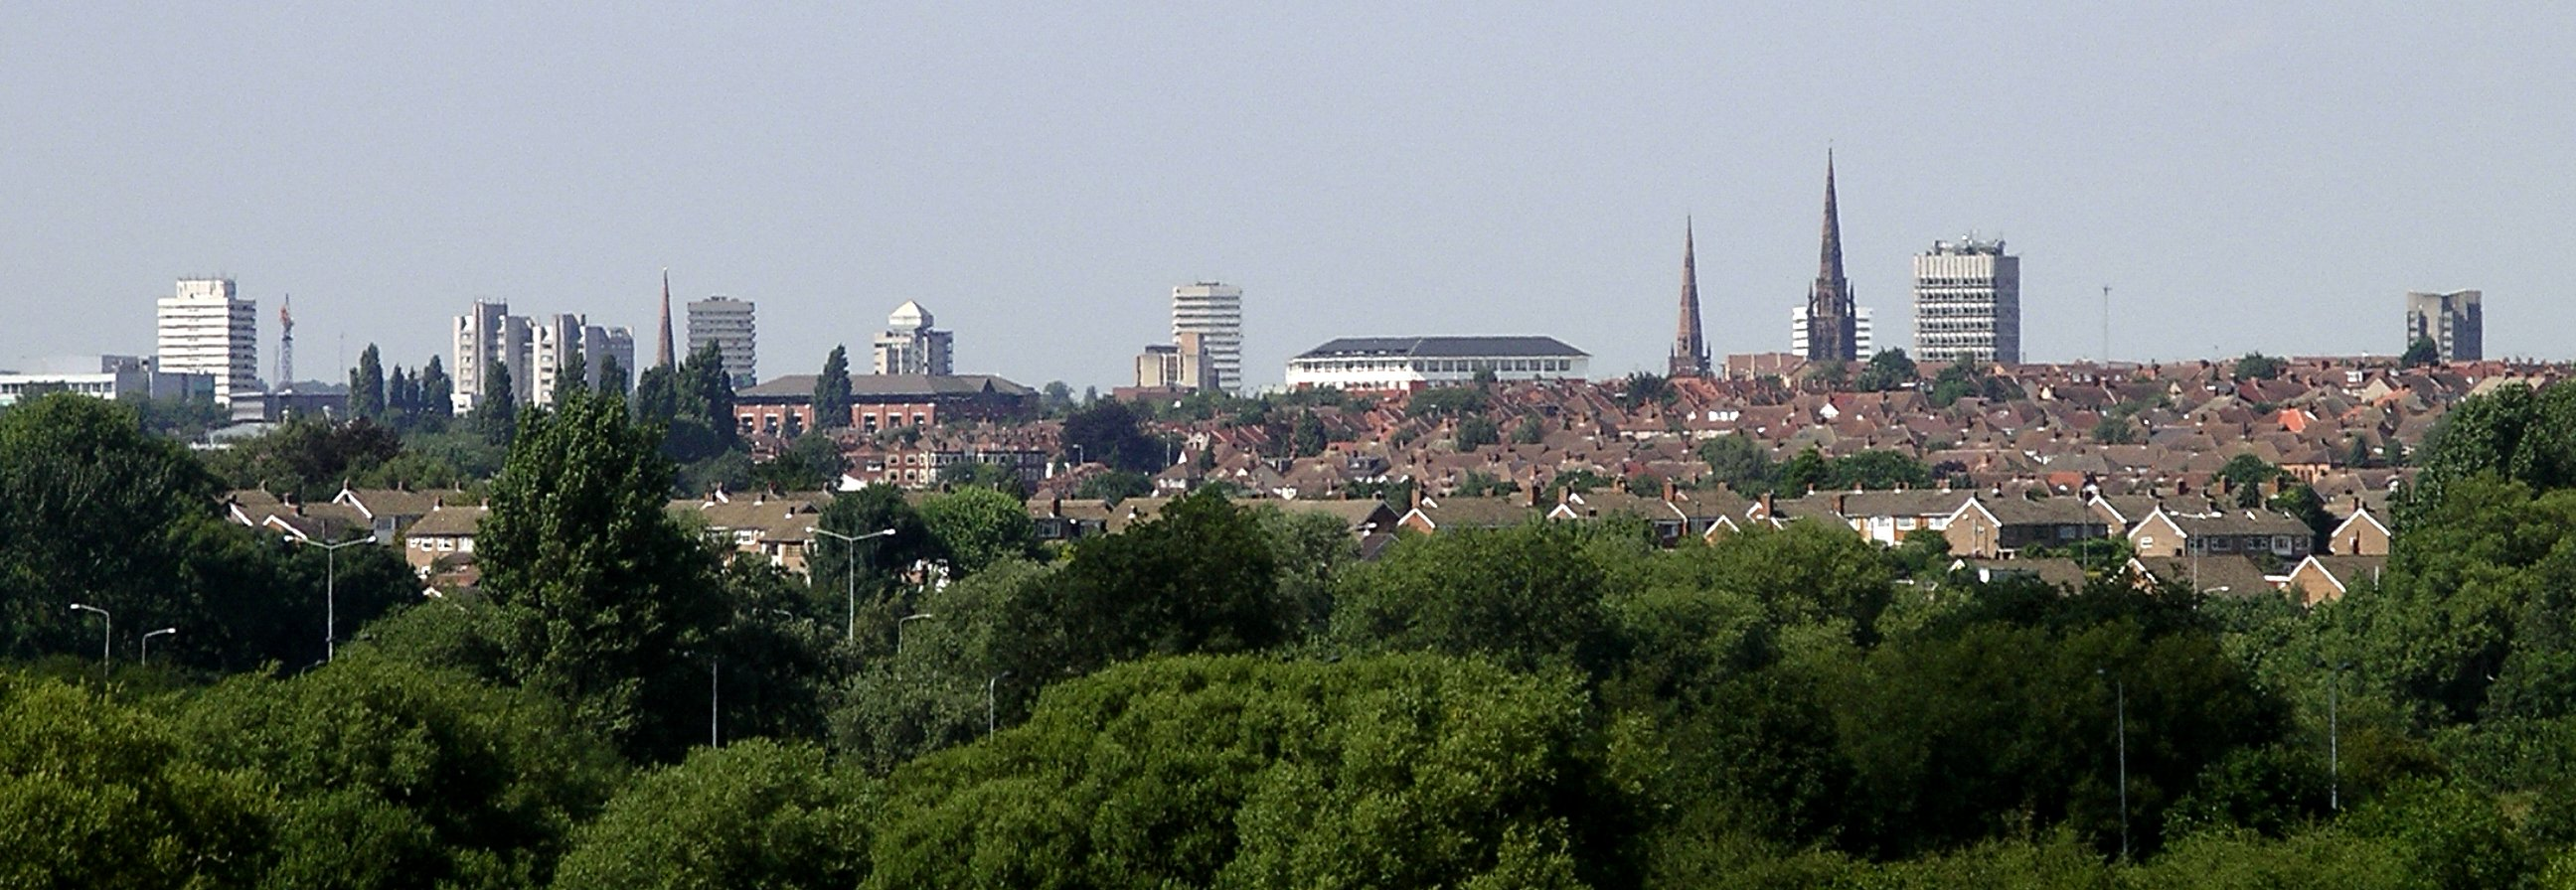 File:Skyline of Coventry as seen from Baginton 3g06.JPG